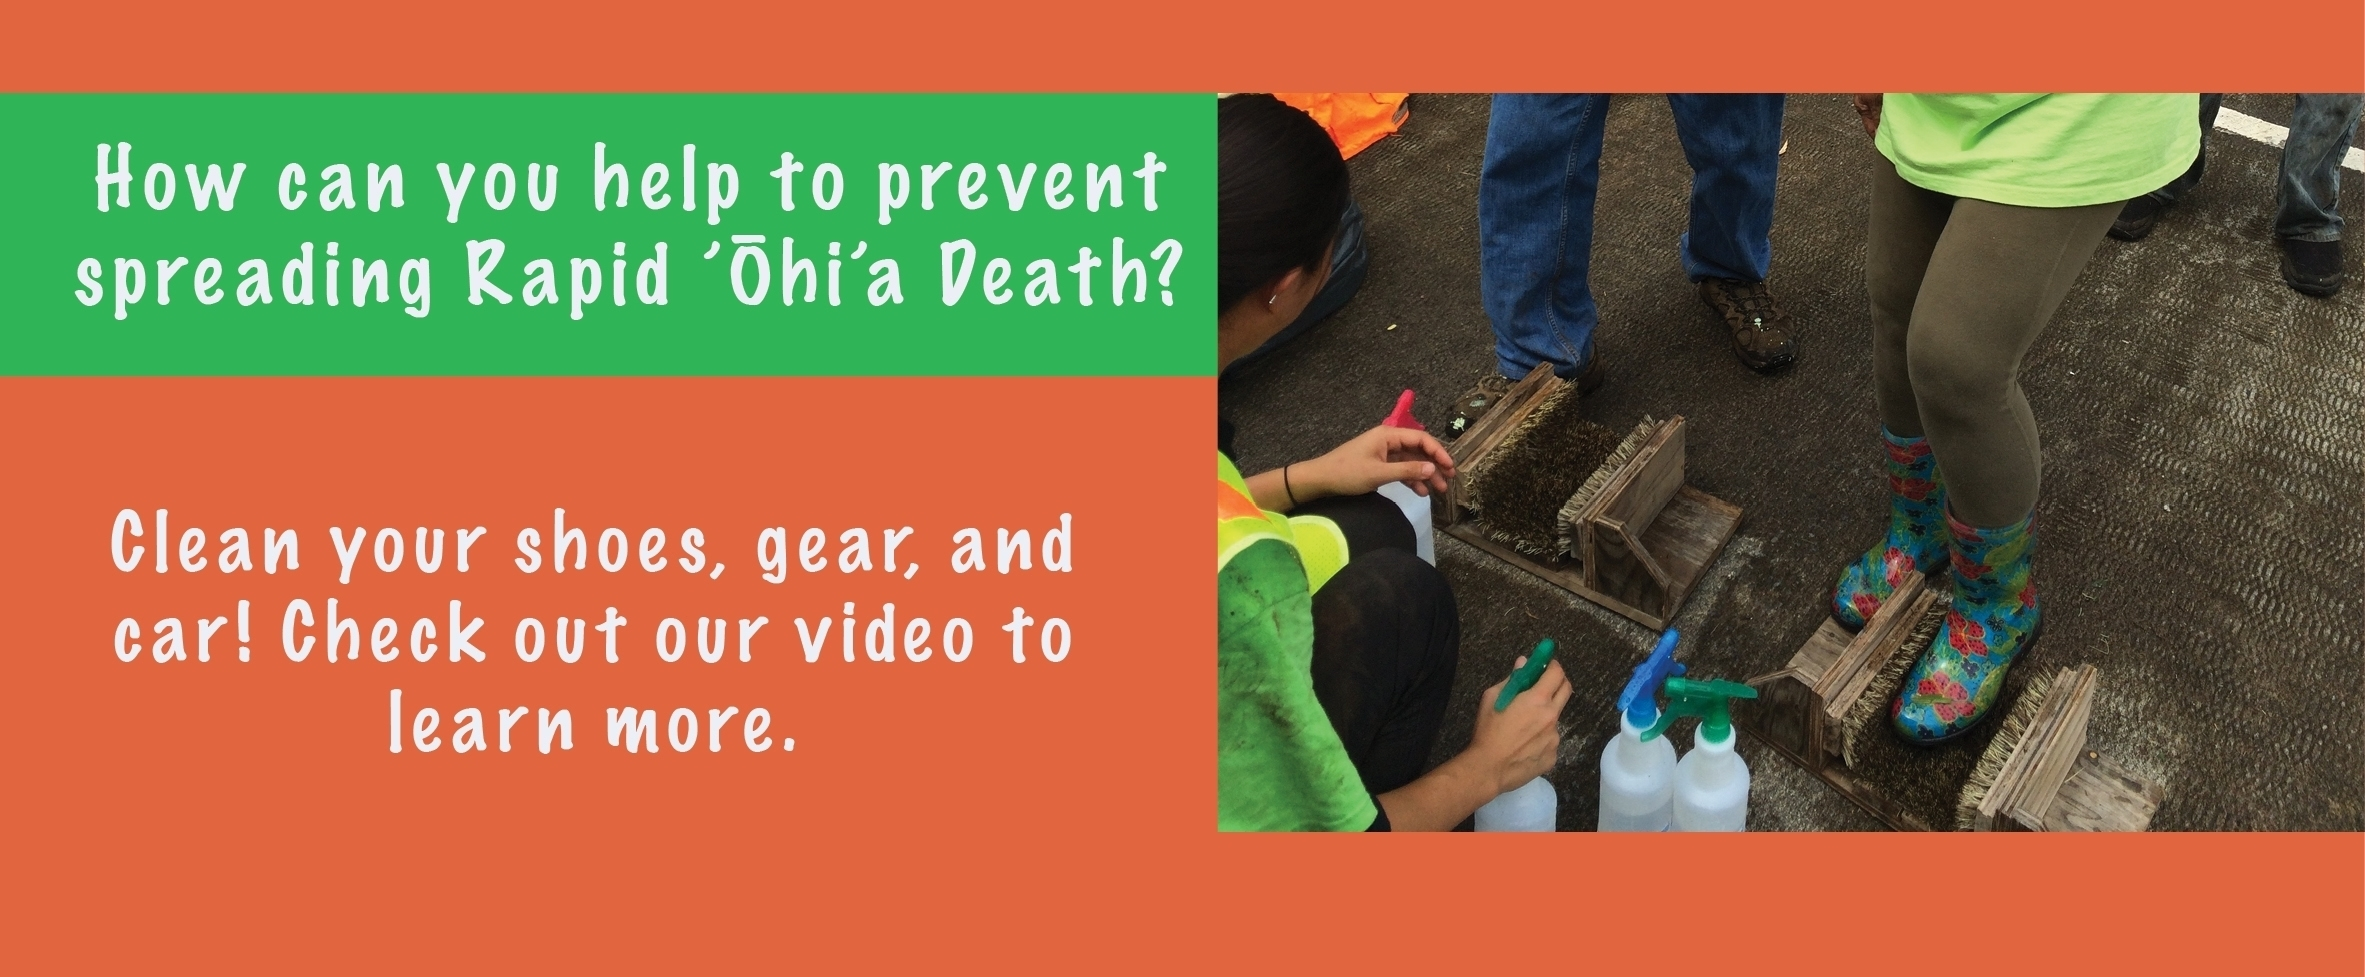 1. Brush/Scrape all dirt or mud off shoes. 2. Spray to coat the bottom of your shoes with 70% rubbing alcohol. Prevent spreading Rapid Ohia Death by following these simple steps before and after visiting forests. Click here to watch a quick video on sanitation.